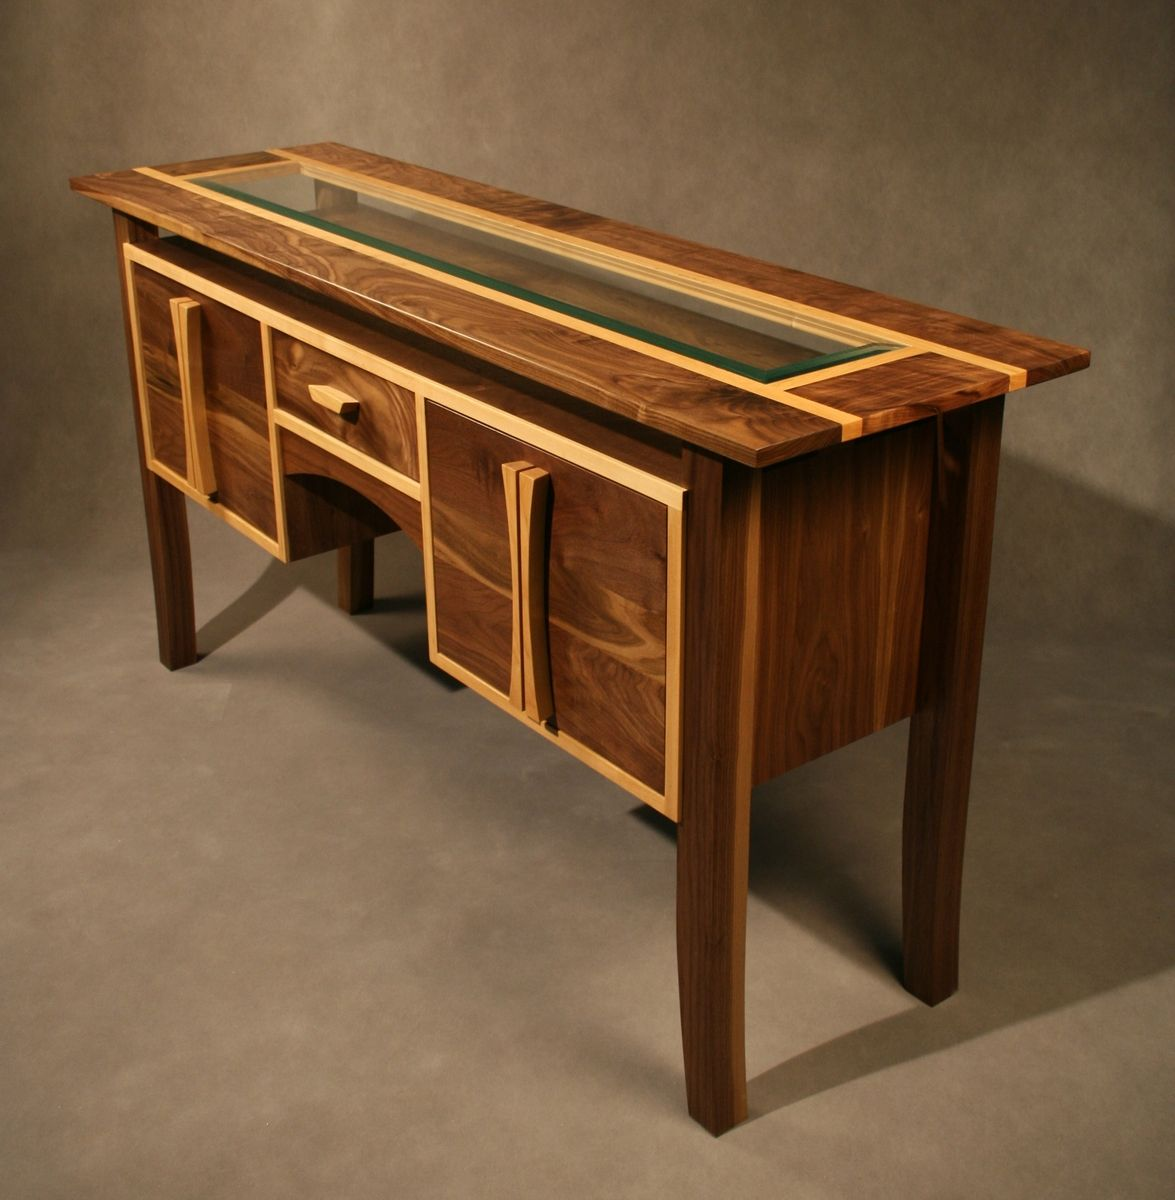 Hand Crafted Sideboard / Buffet by Art Woodstone Studio | CustomMade.com